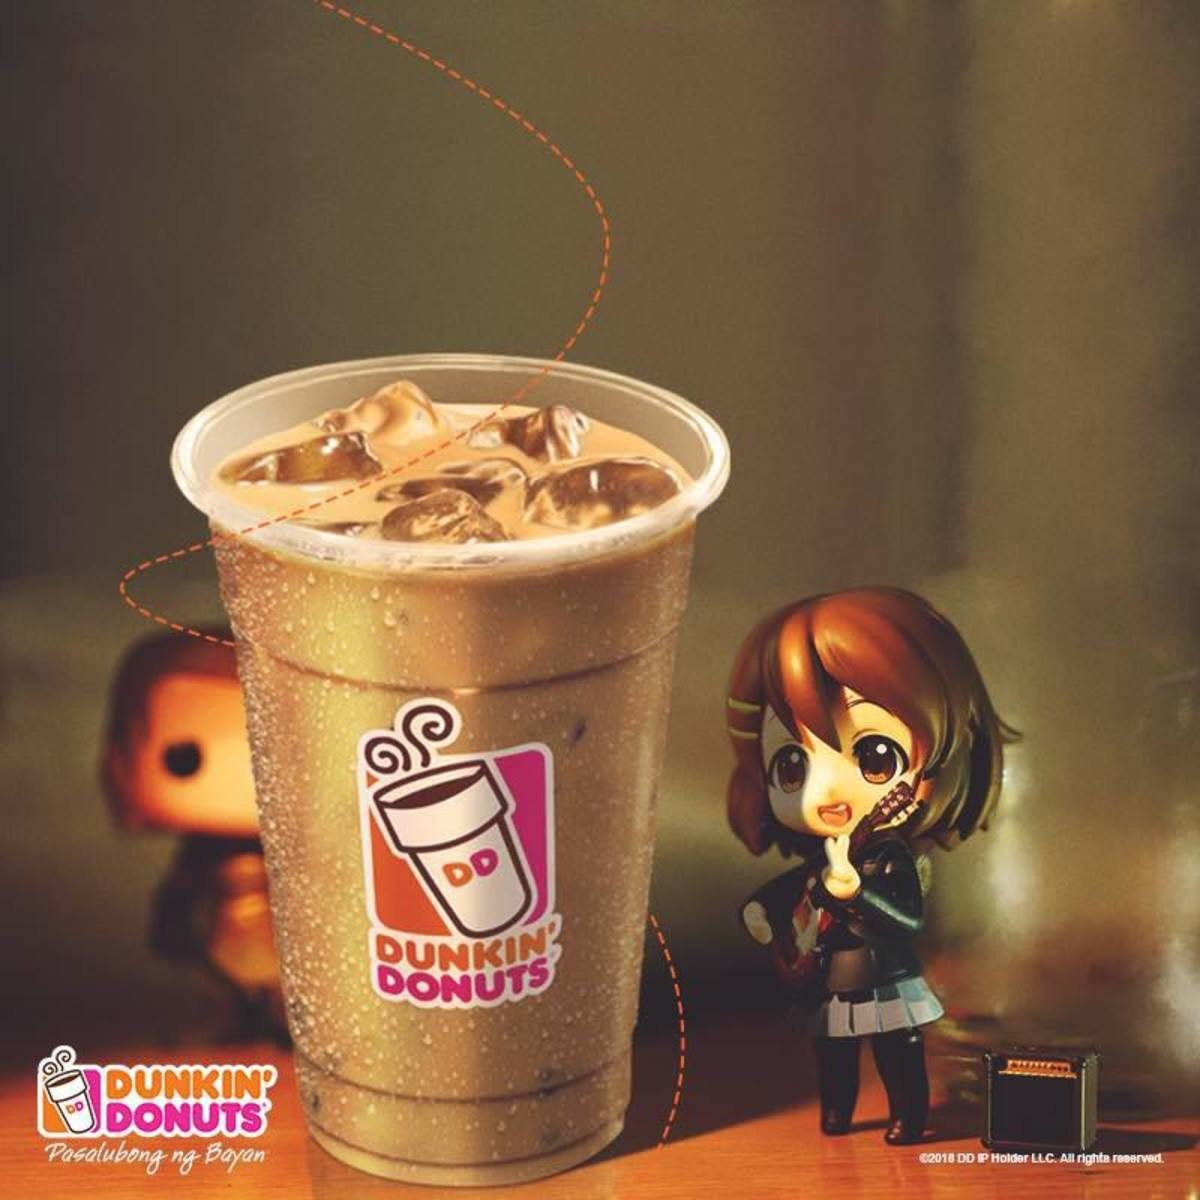 America Runs on Dunkin?. Real ad join list: SmolHol (1464 subs)Mention History join list:. EXERCISE THEY THINK WE ACTUALLY WANT TO LIVE IN THIS HELL HOLE